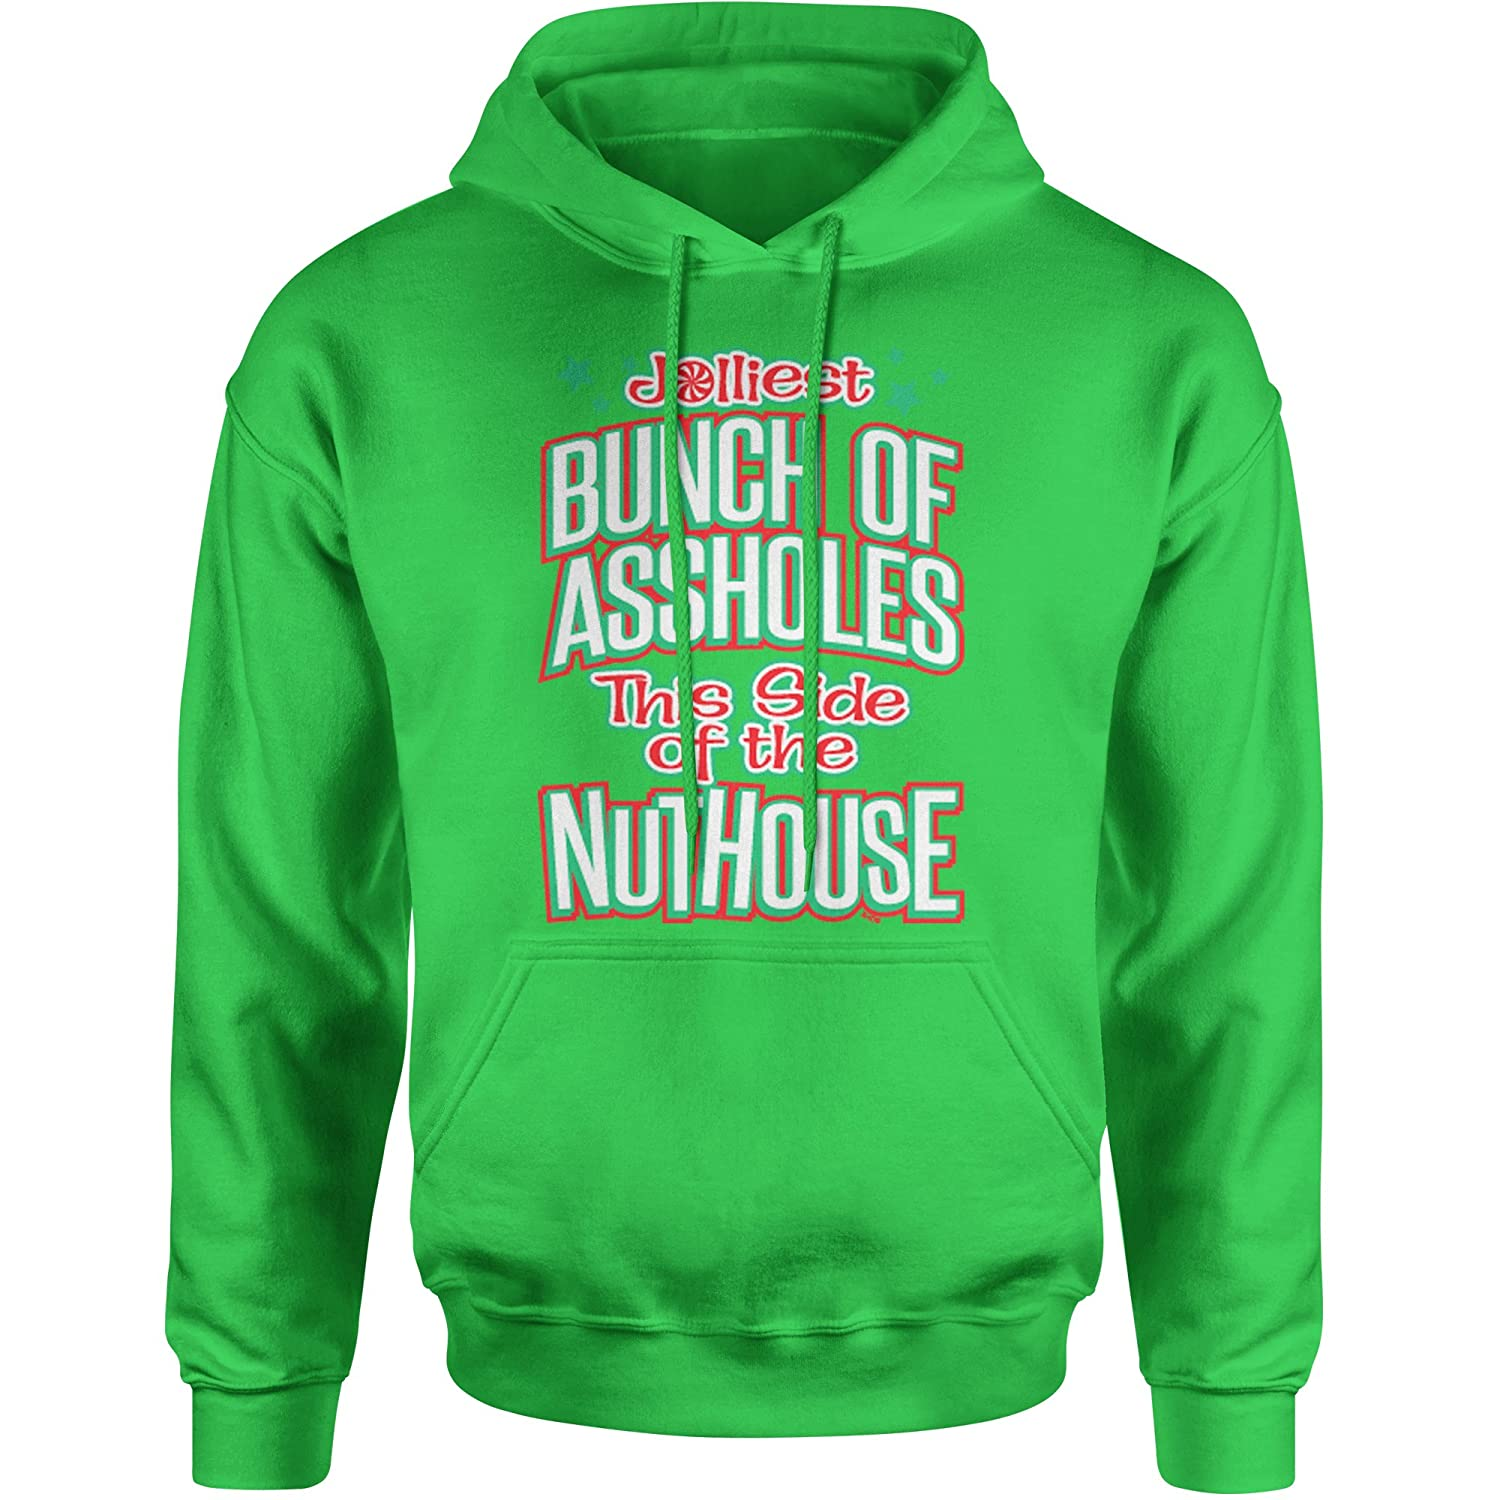 Expression Tees Jolliest Bunch Of A**holes Unisex Adult Hoodie 1204-H